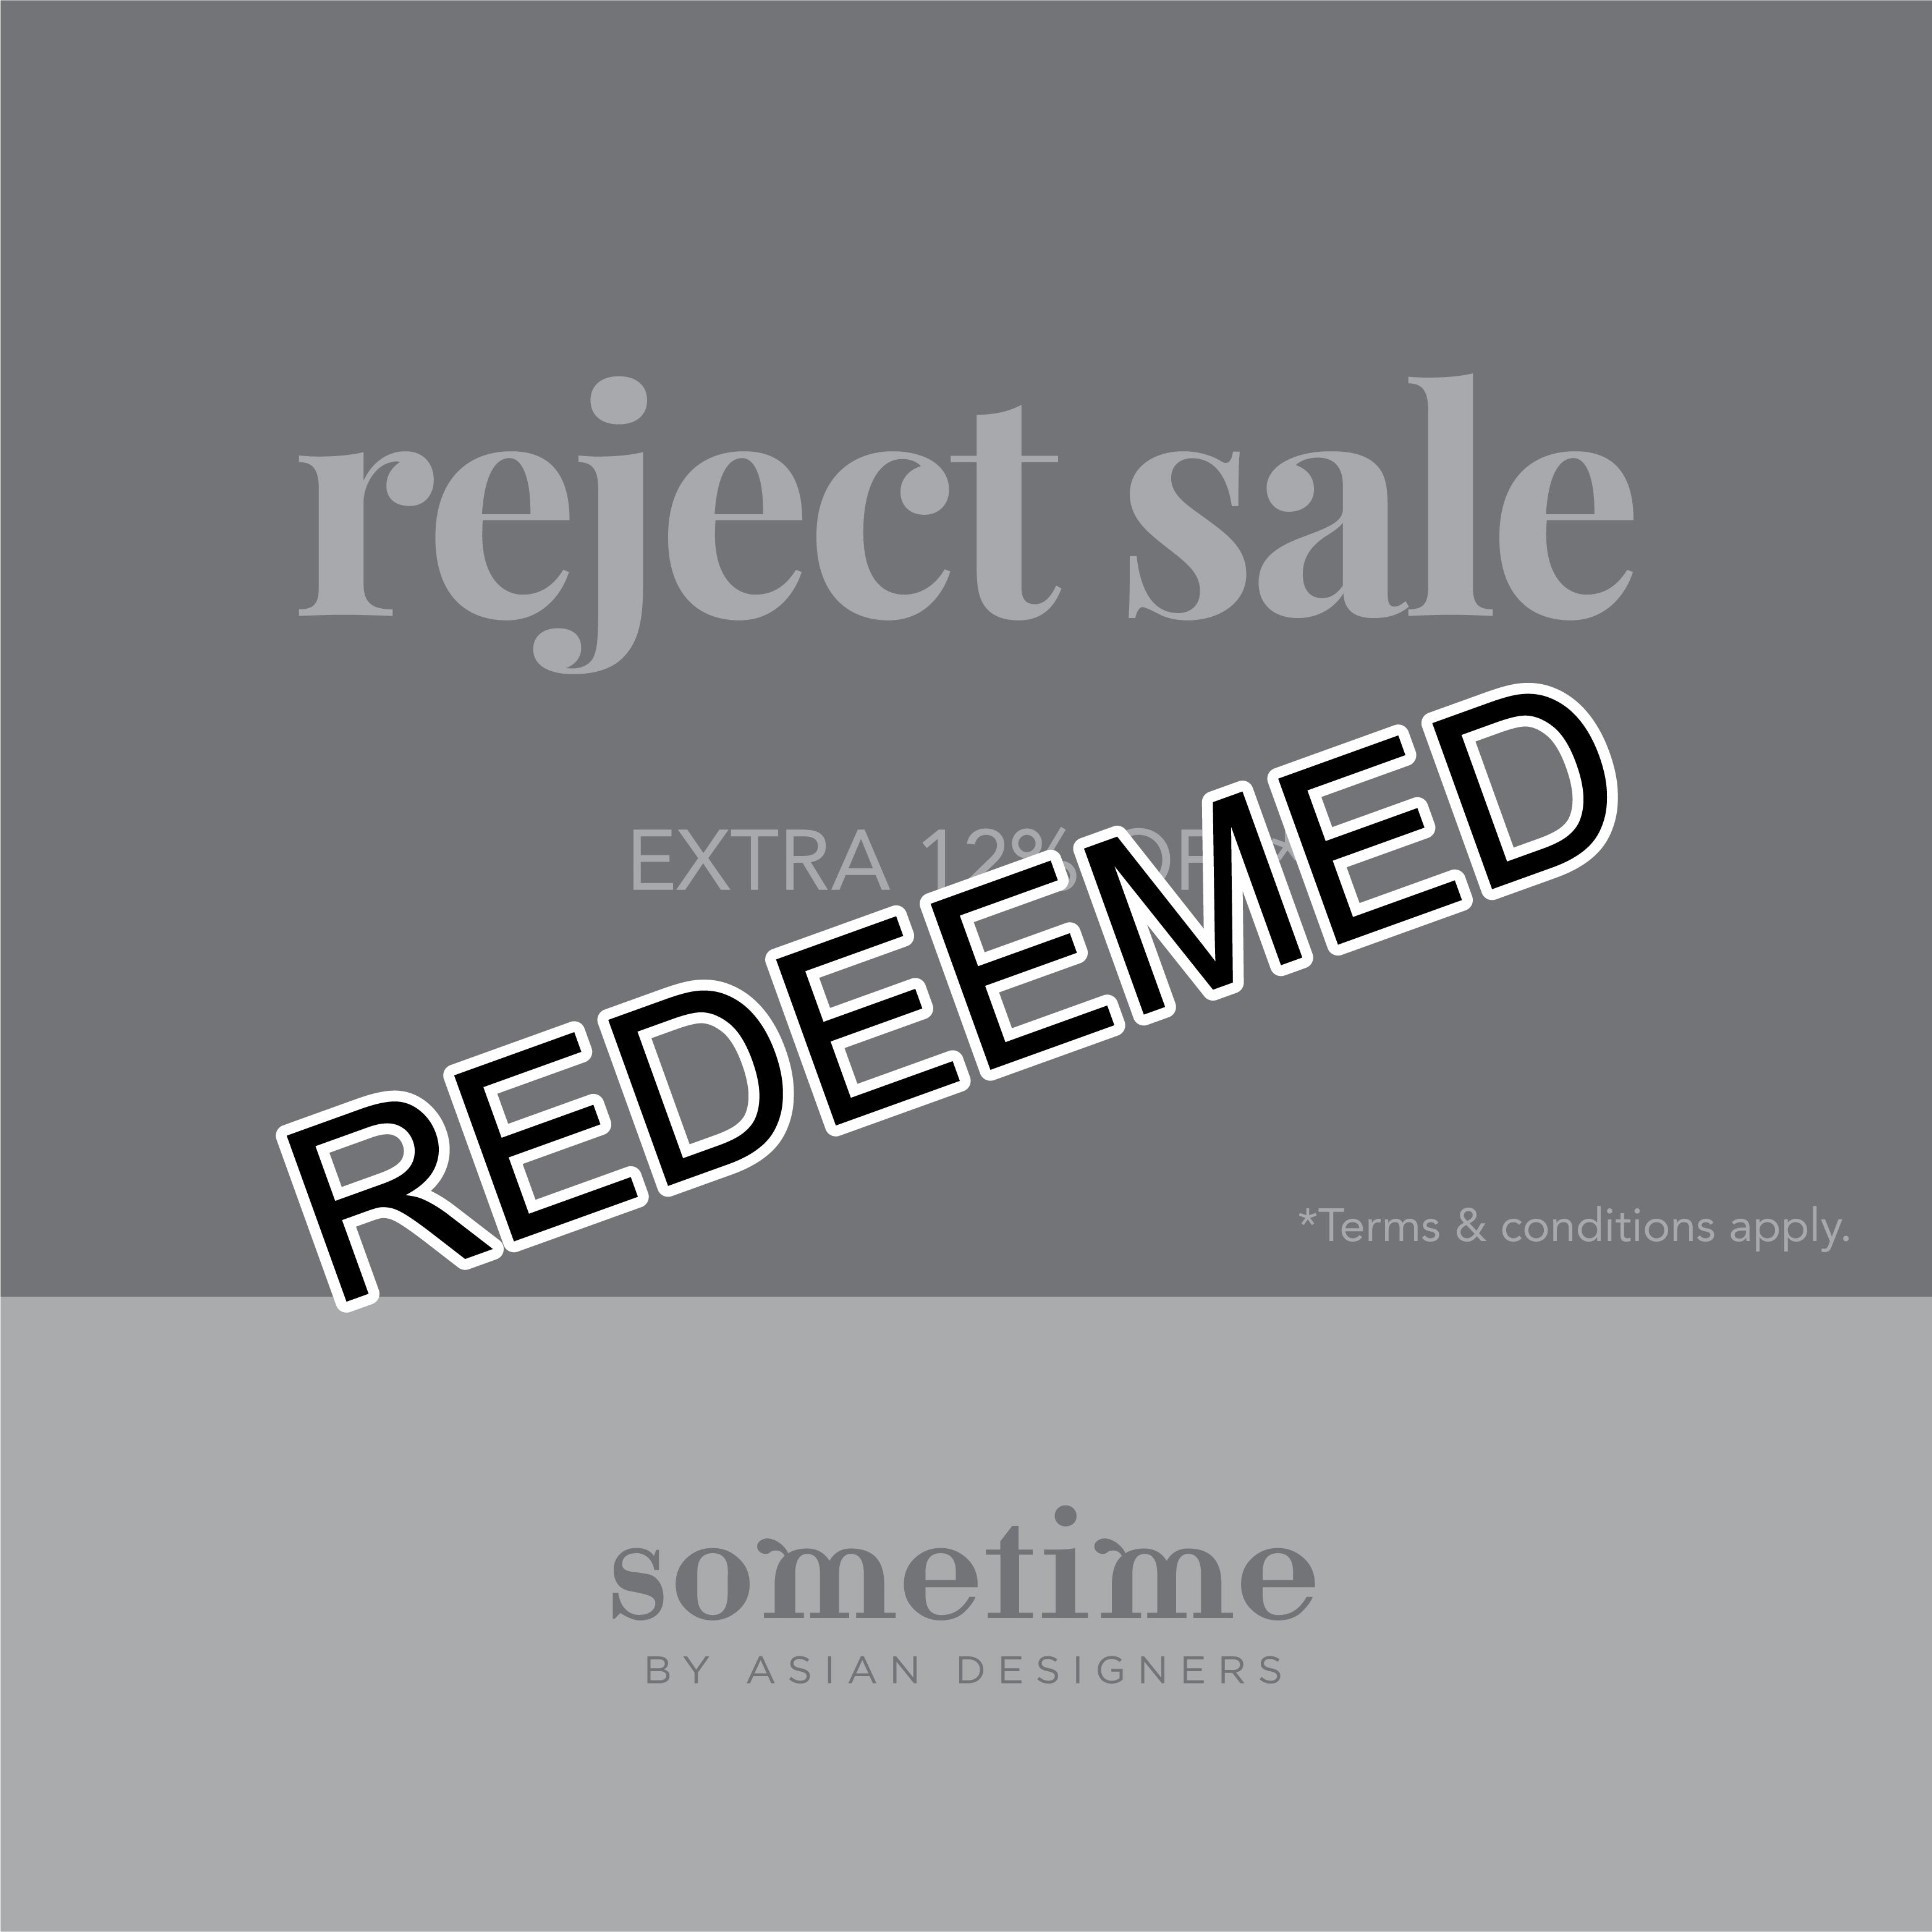 Reject Sale promo code #3